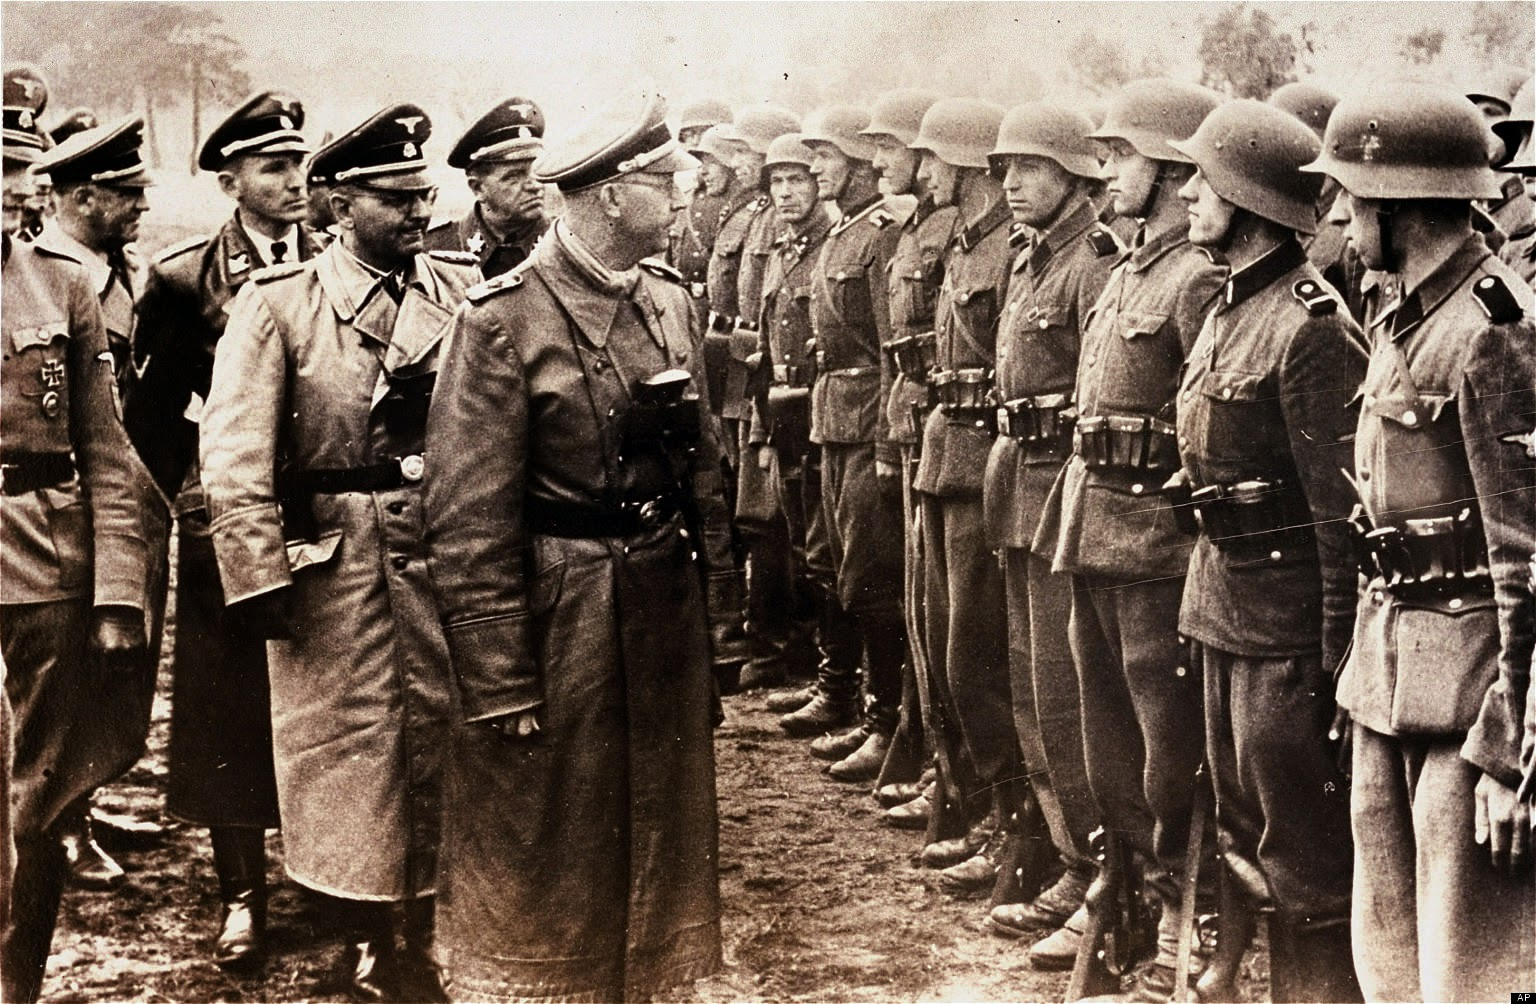 june-3-1944-photo-provided-by-the-u-s-holocaust-memorial-museum-heinrich-himmler-reviews-troops-of-the-galician-ss-volunteer-infantry-division